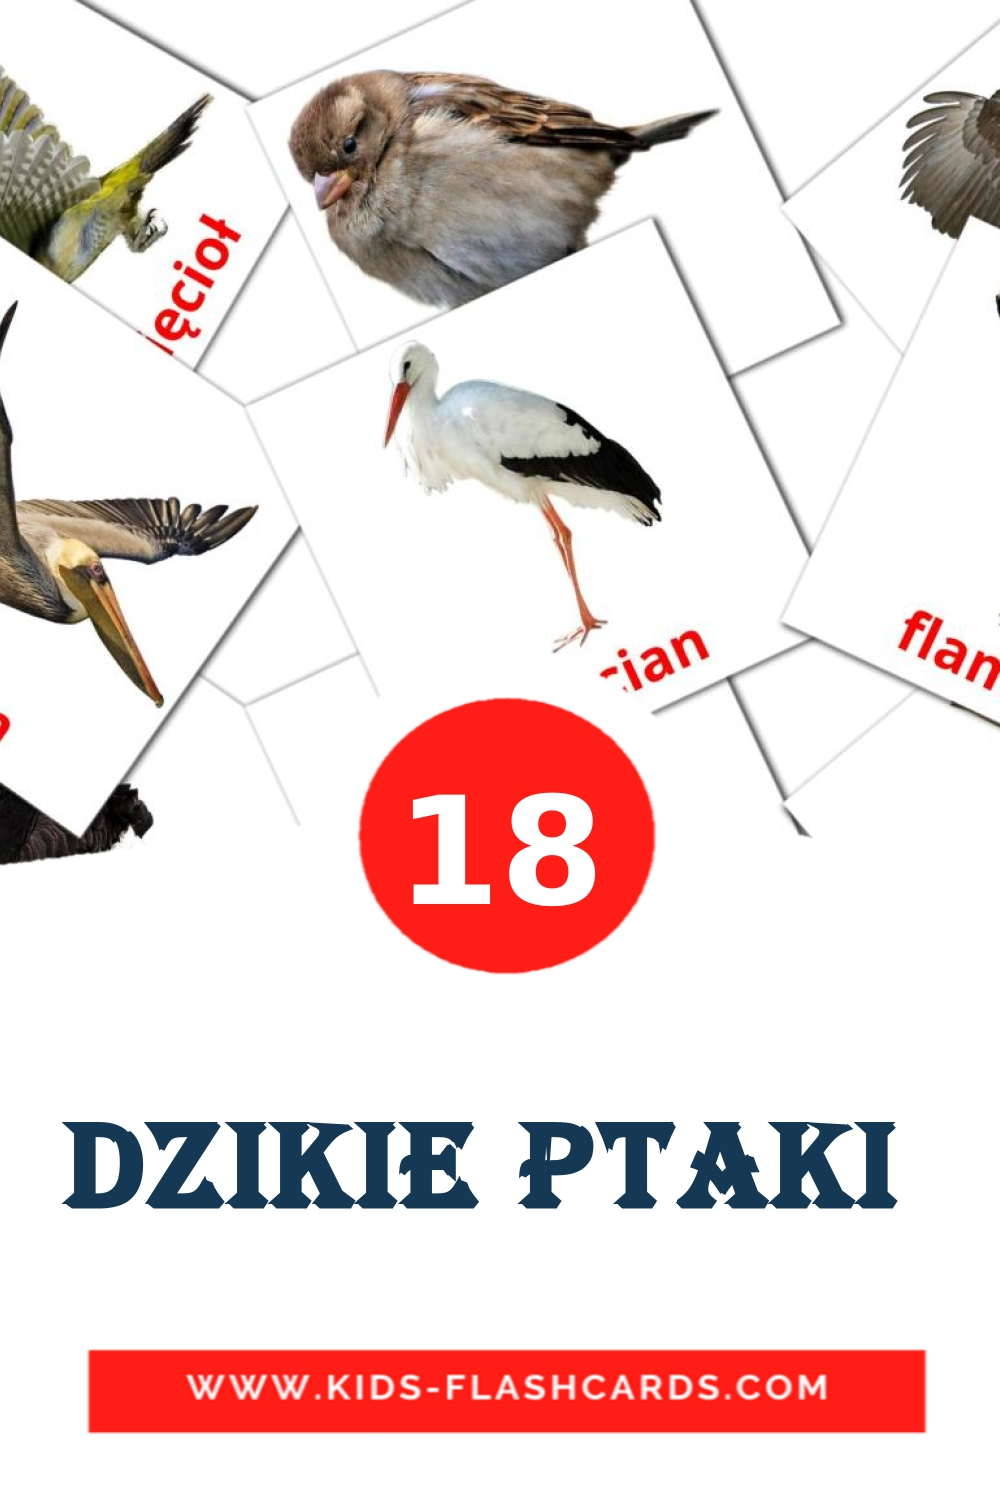 Dzikie ptaki  - free cards in polish